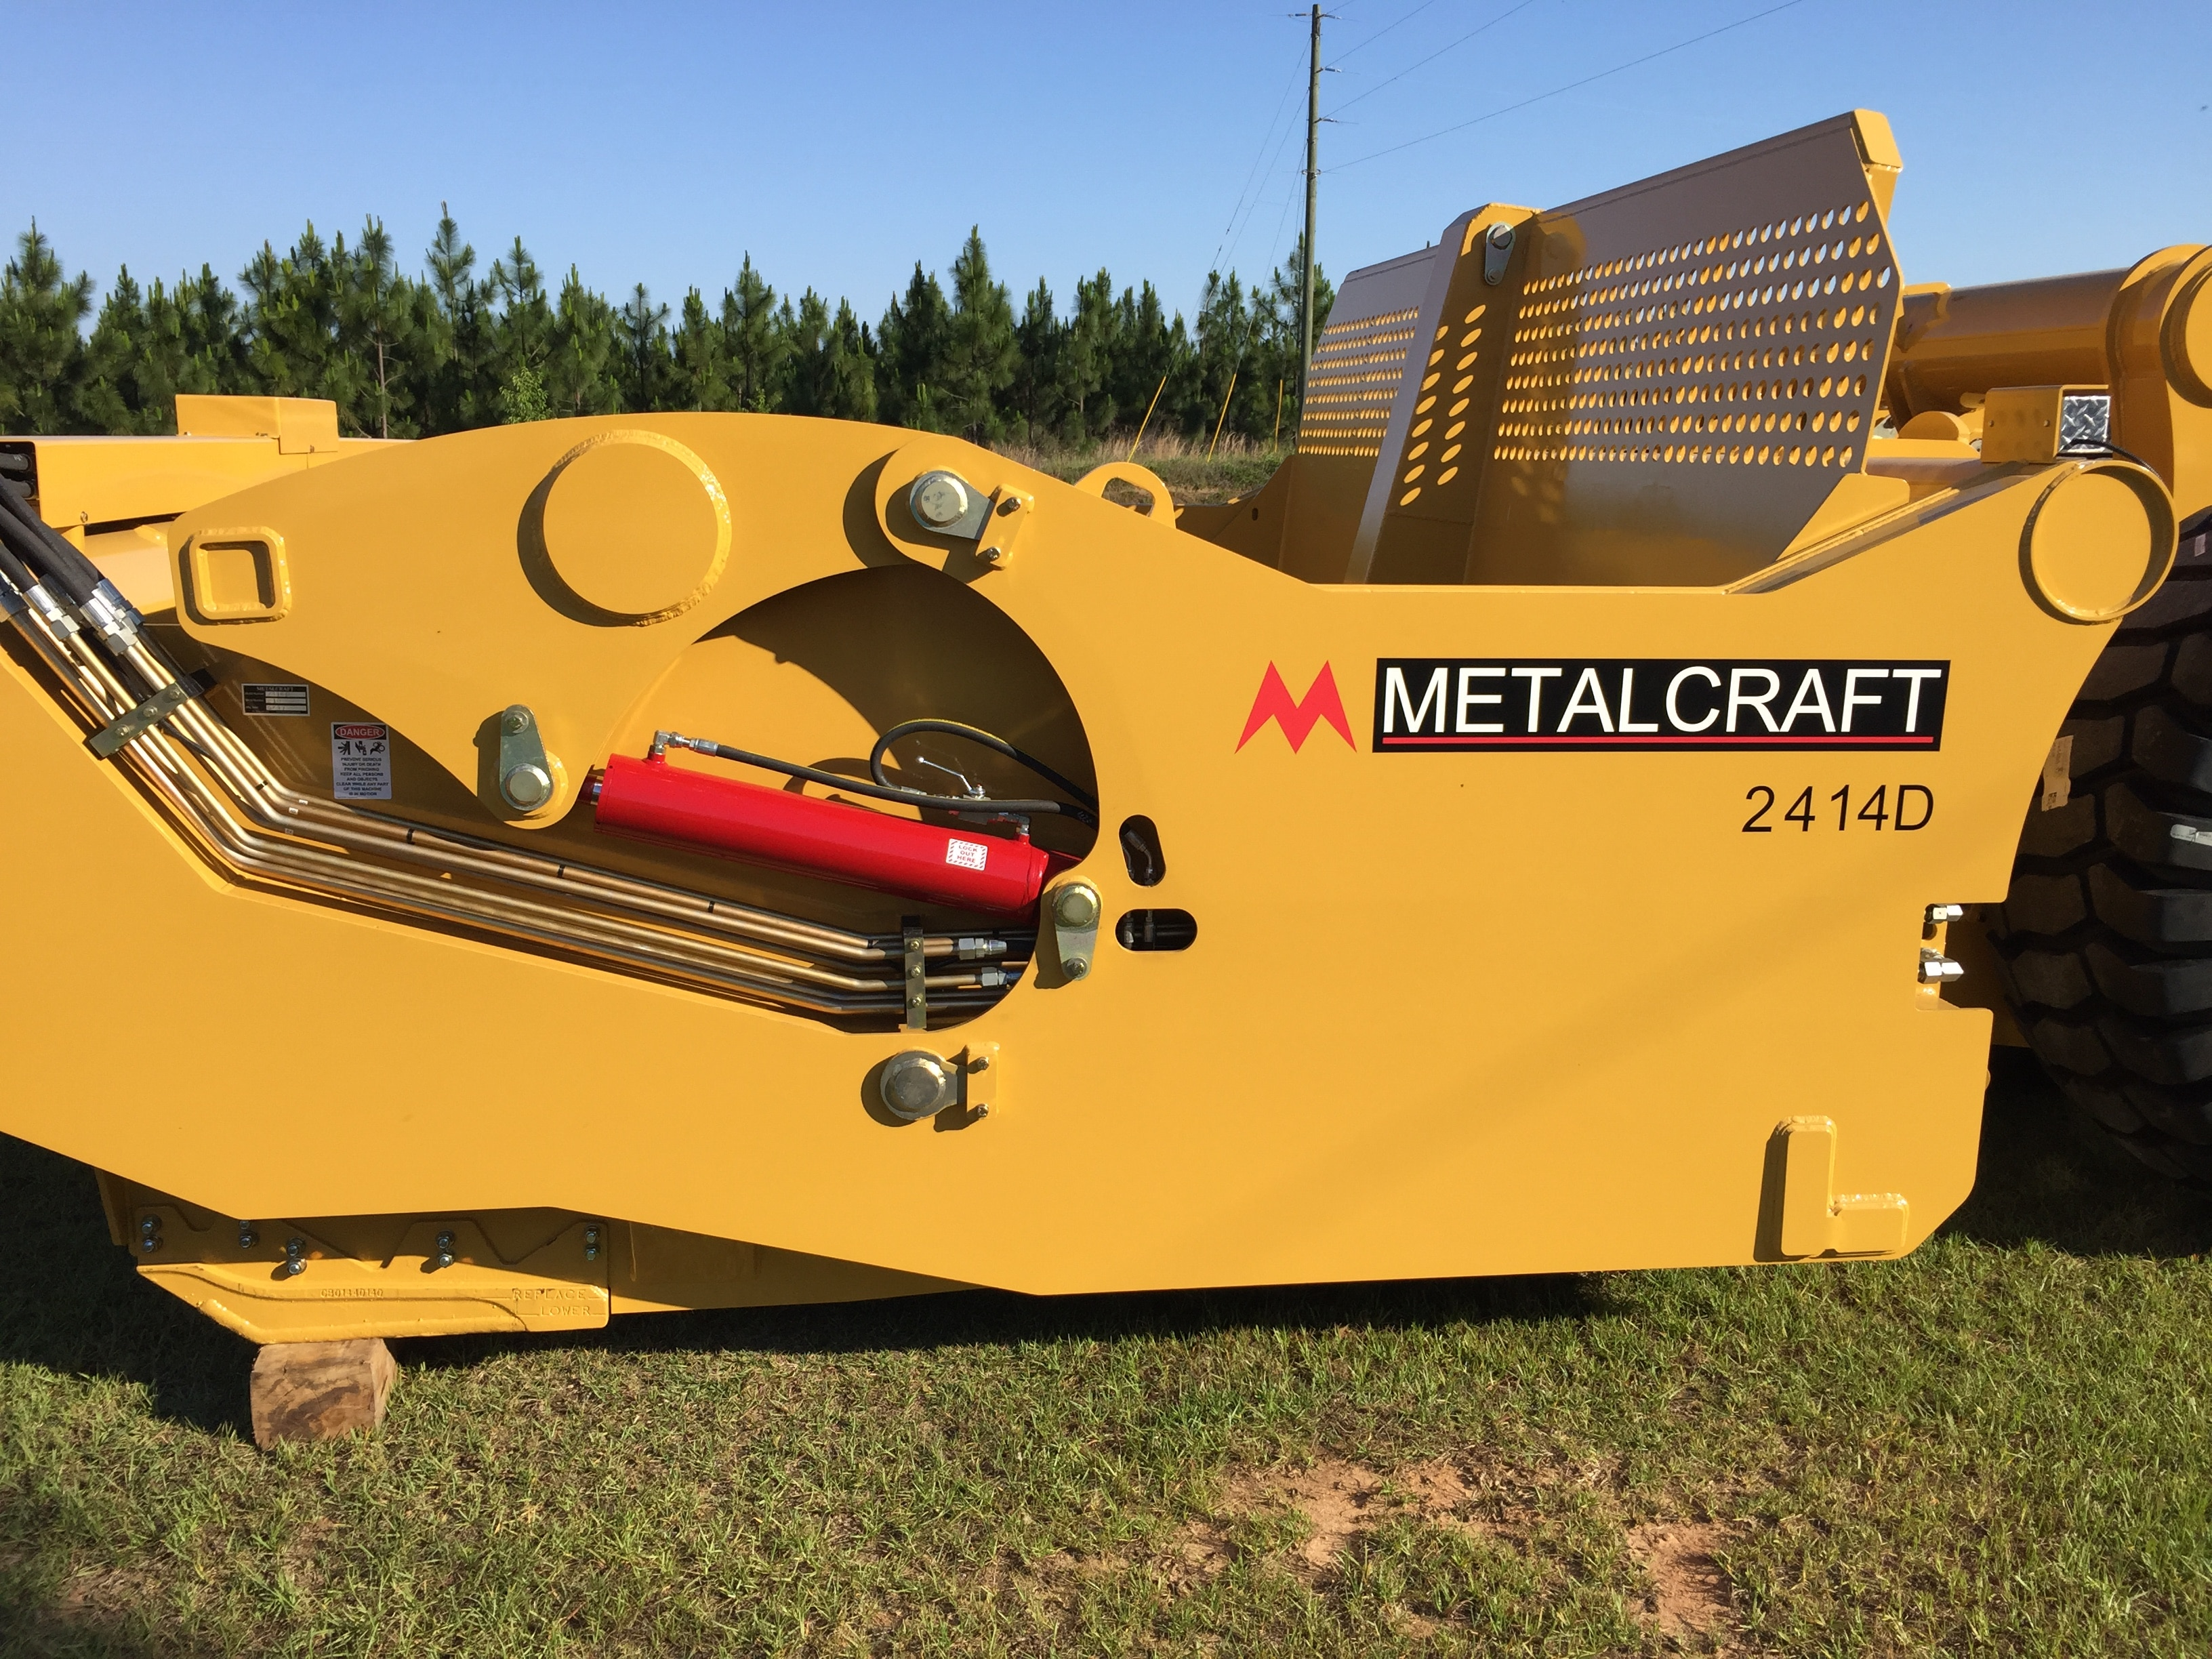 Equipment - Metalcraft Scrapers